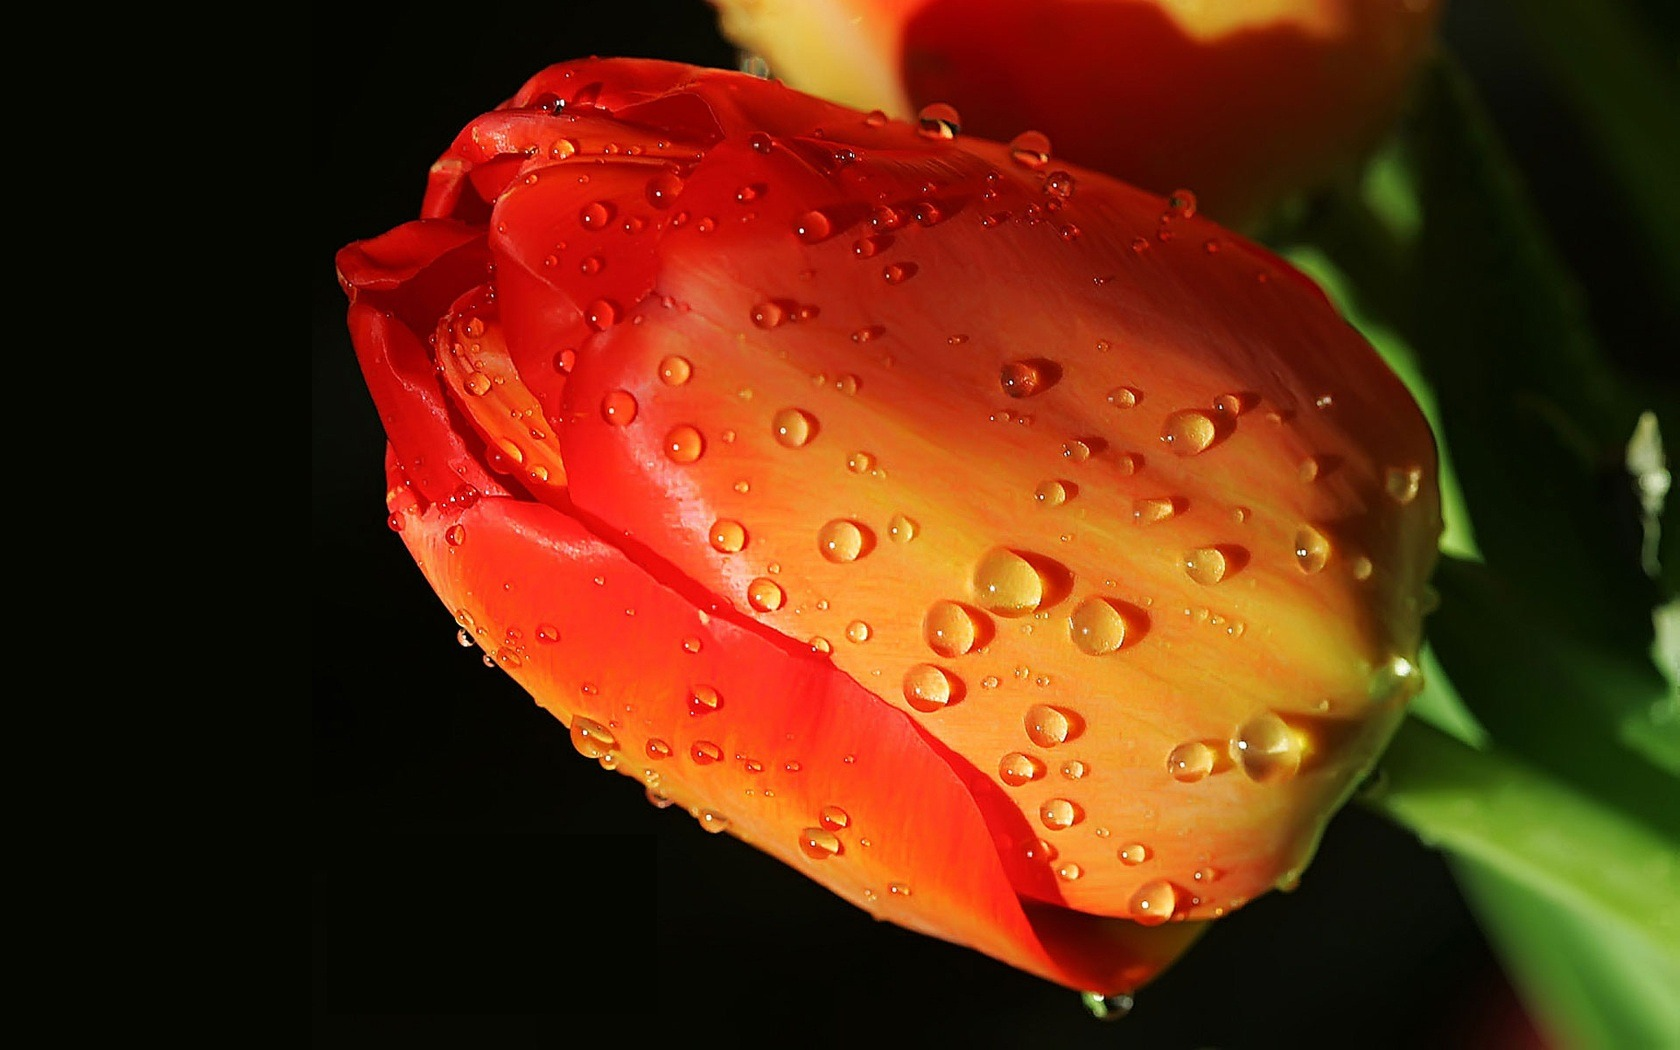 HD wallpaper flowers and drops of water #13 - 1680x1050